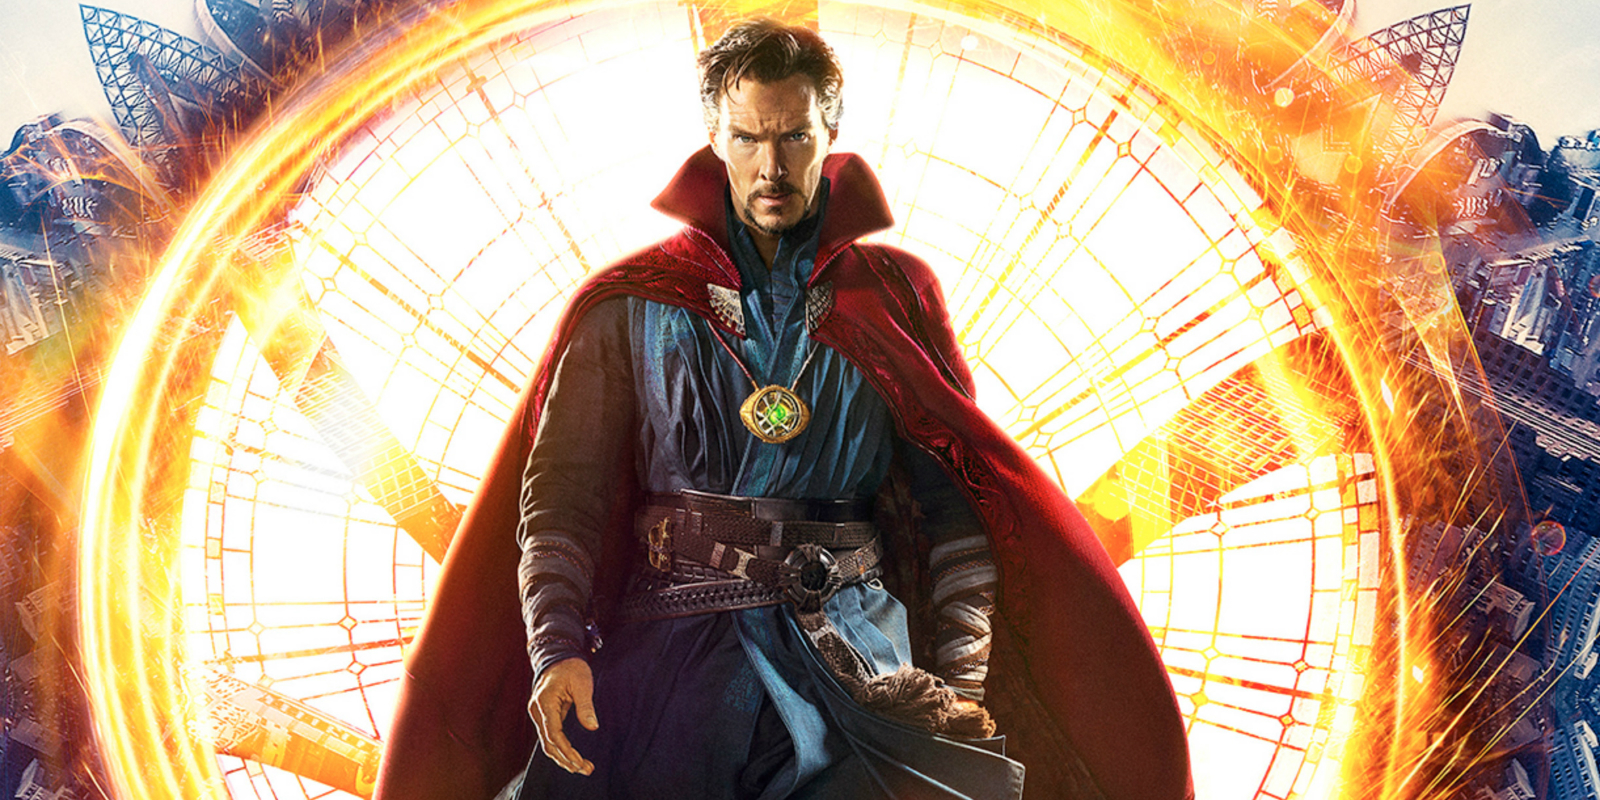 New DOCTOR STRANGE Featurette Focuses on Character